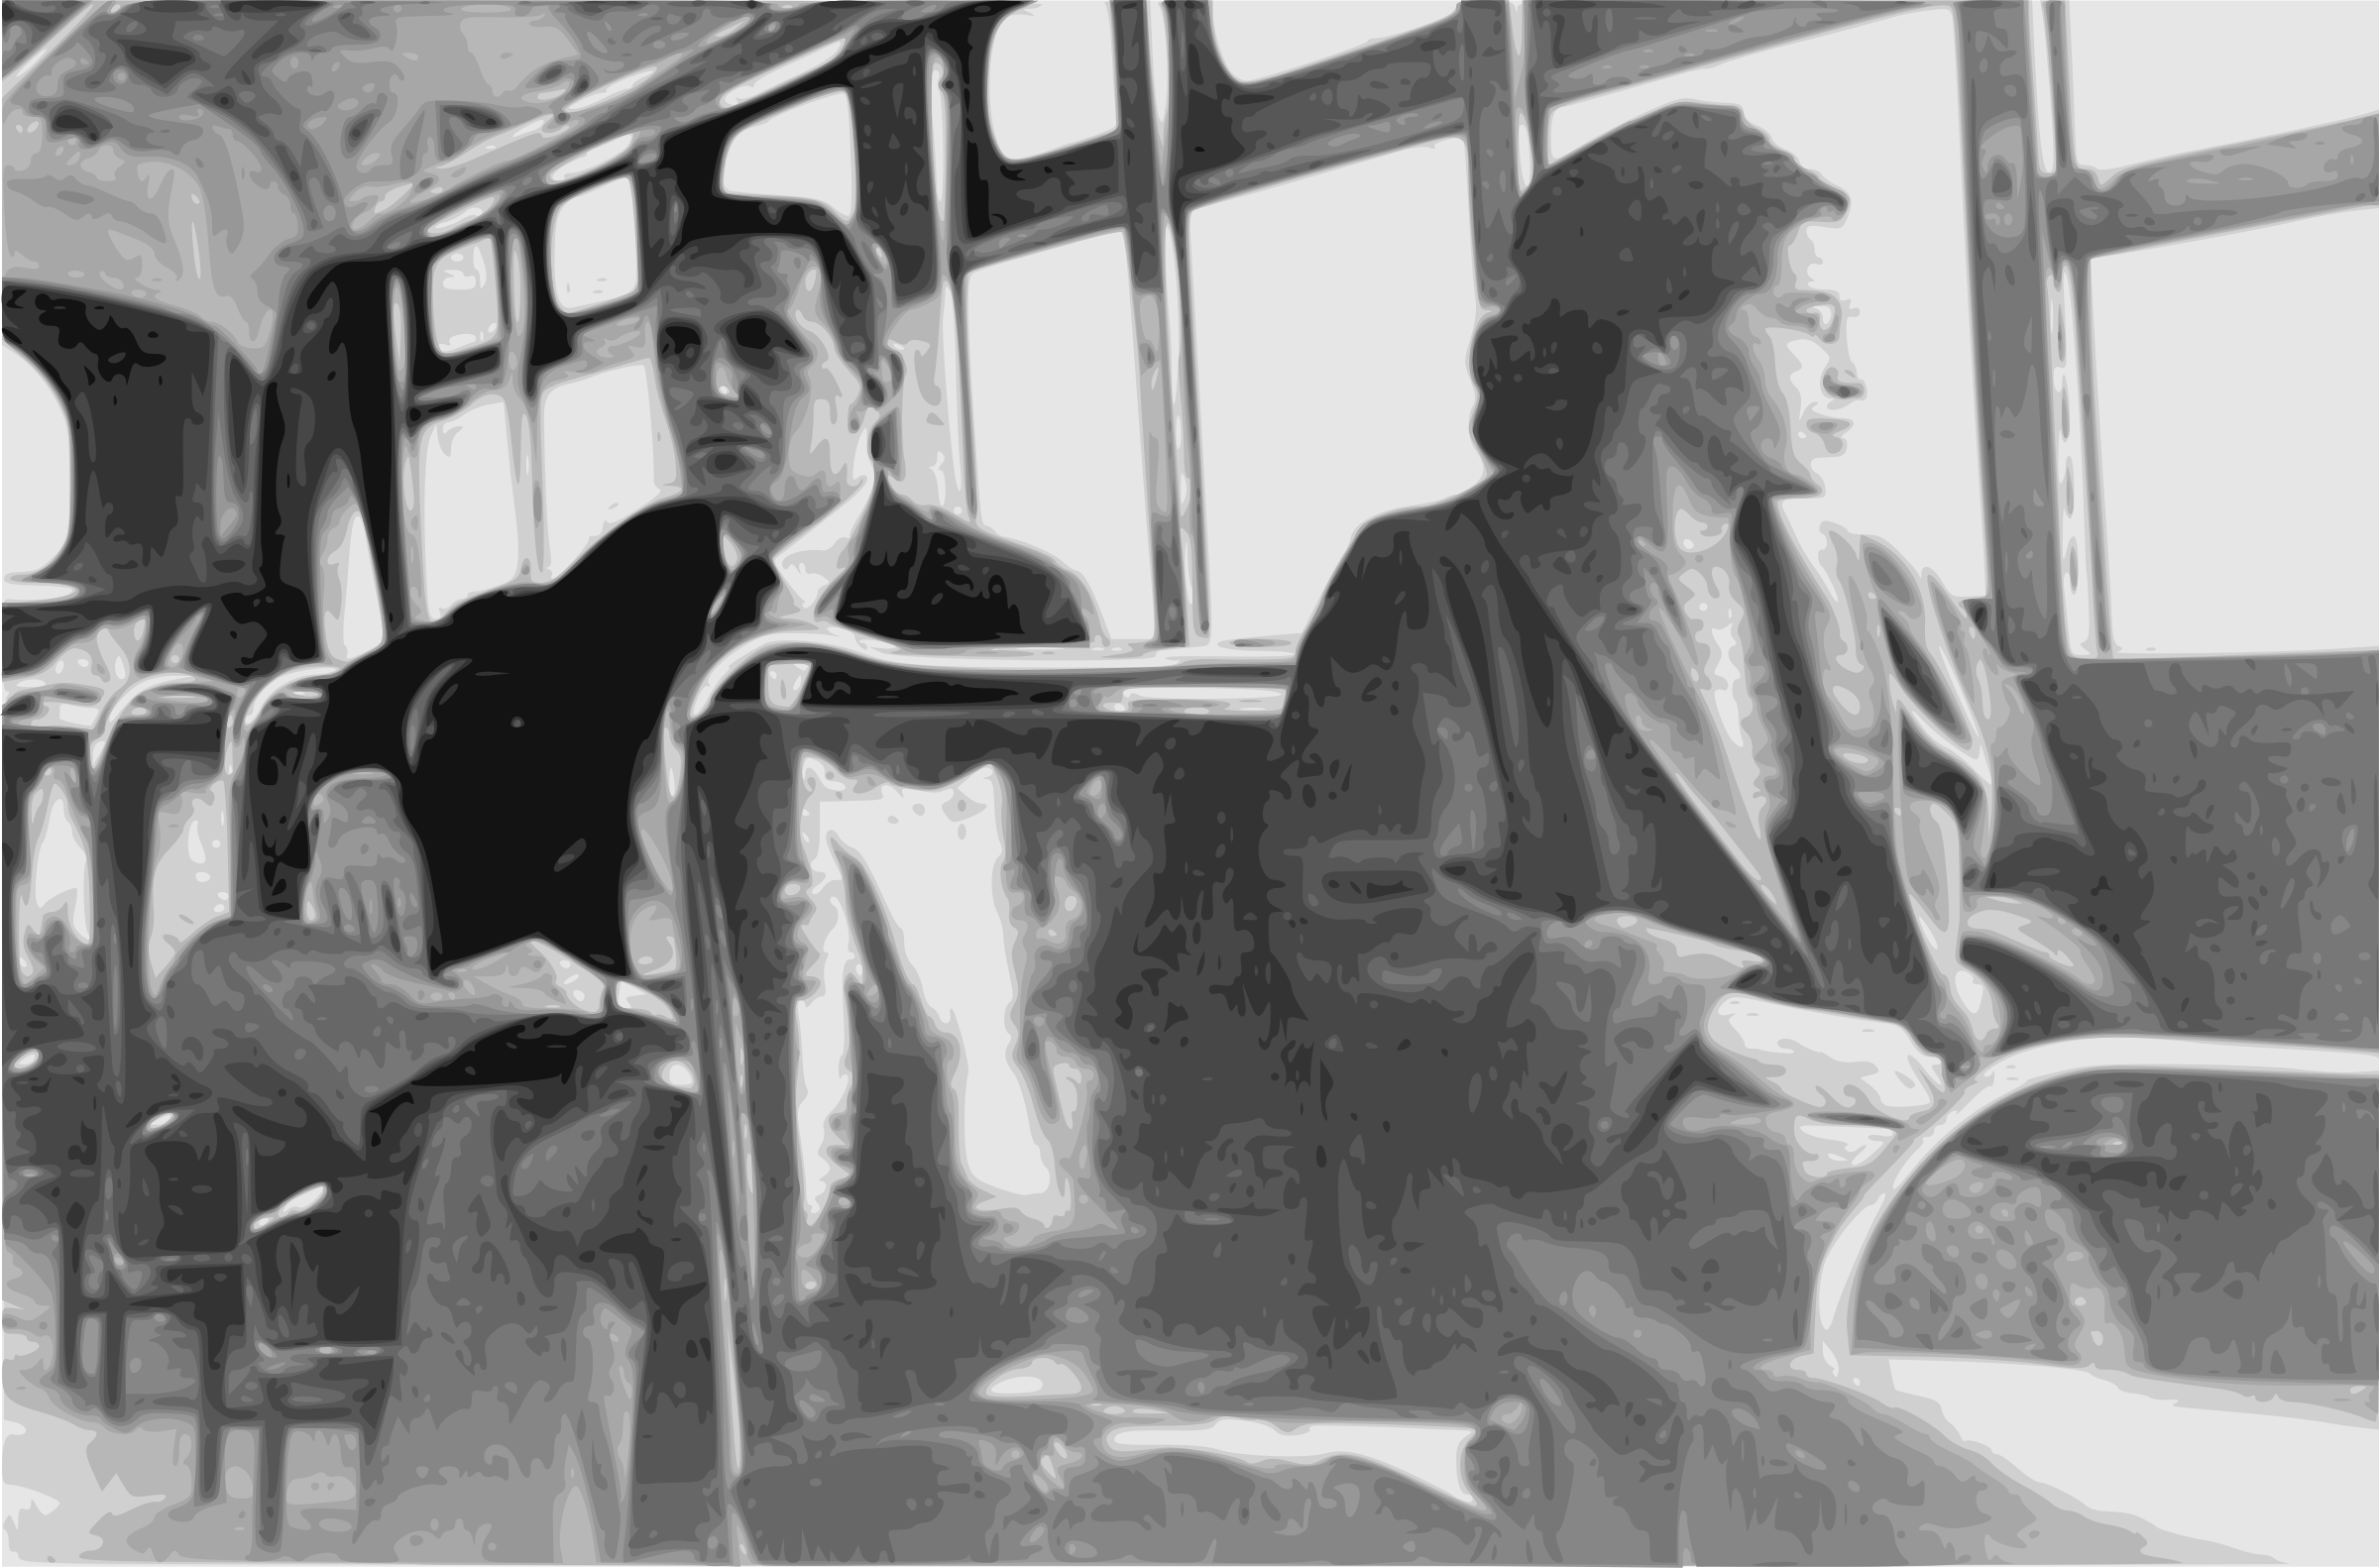 Rosa Parks on a Bus by j4p4n